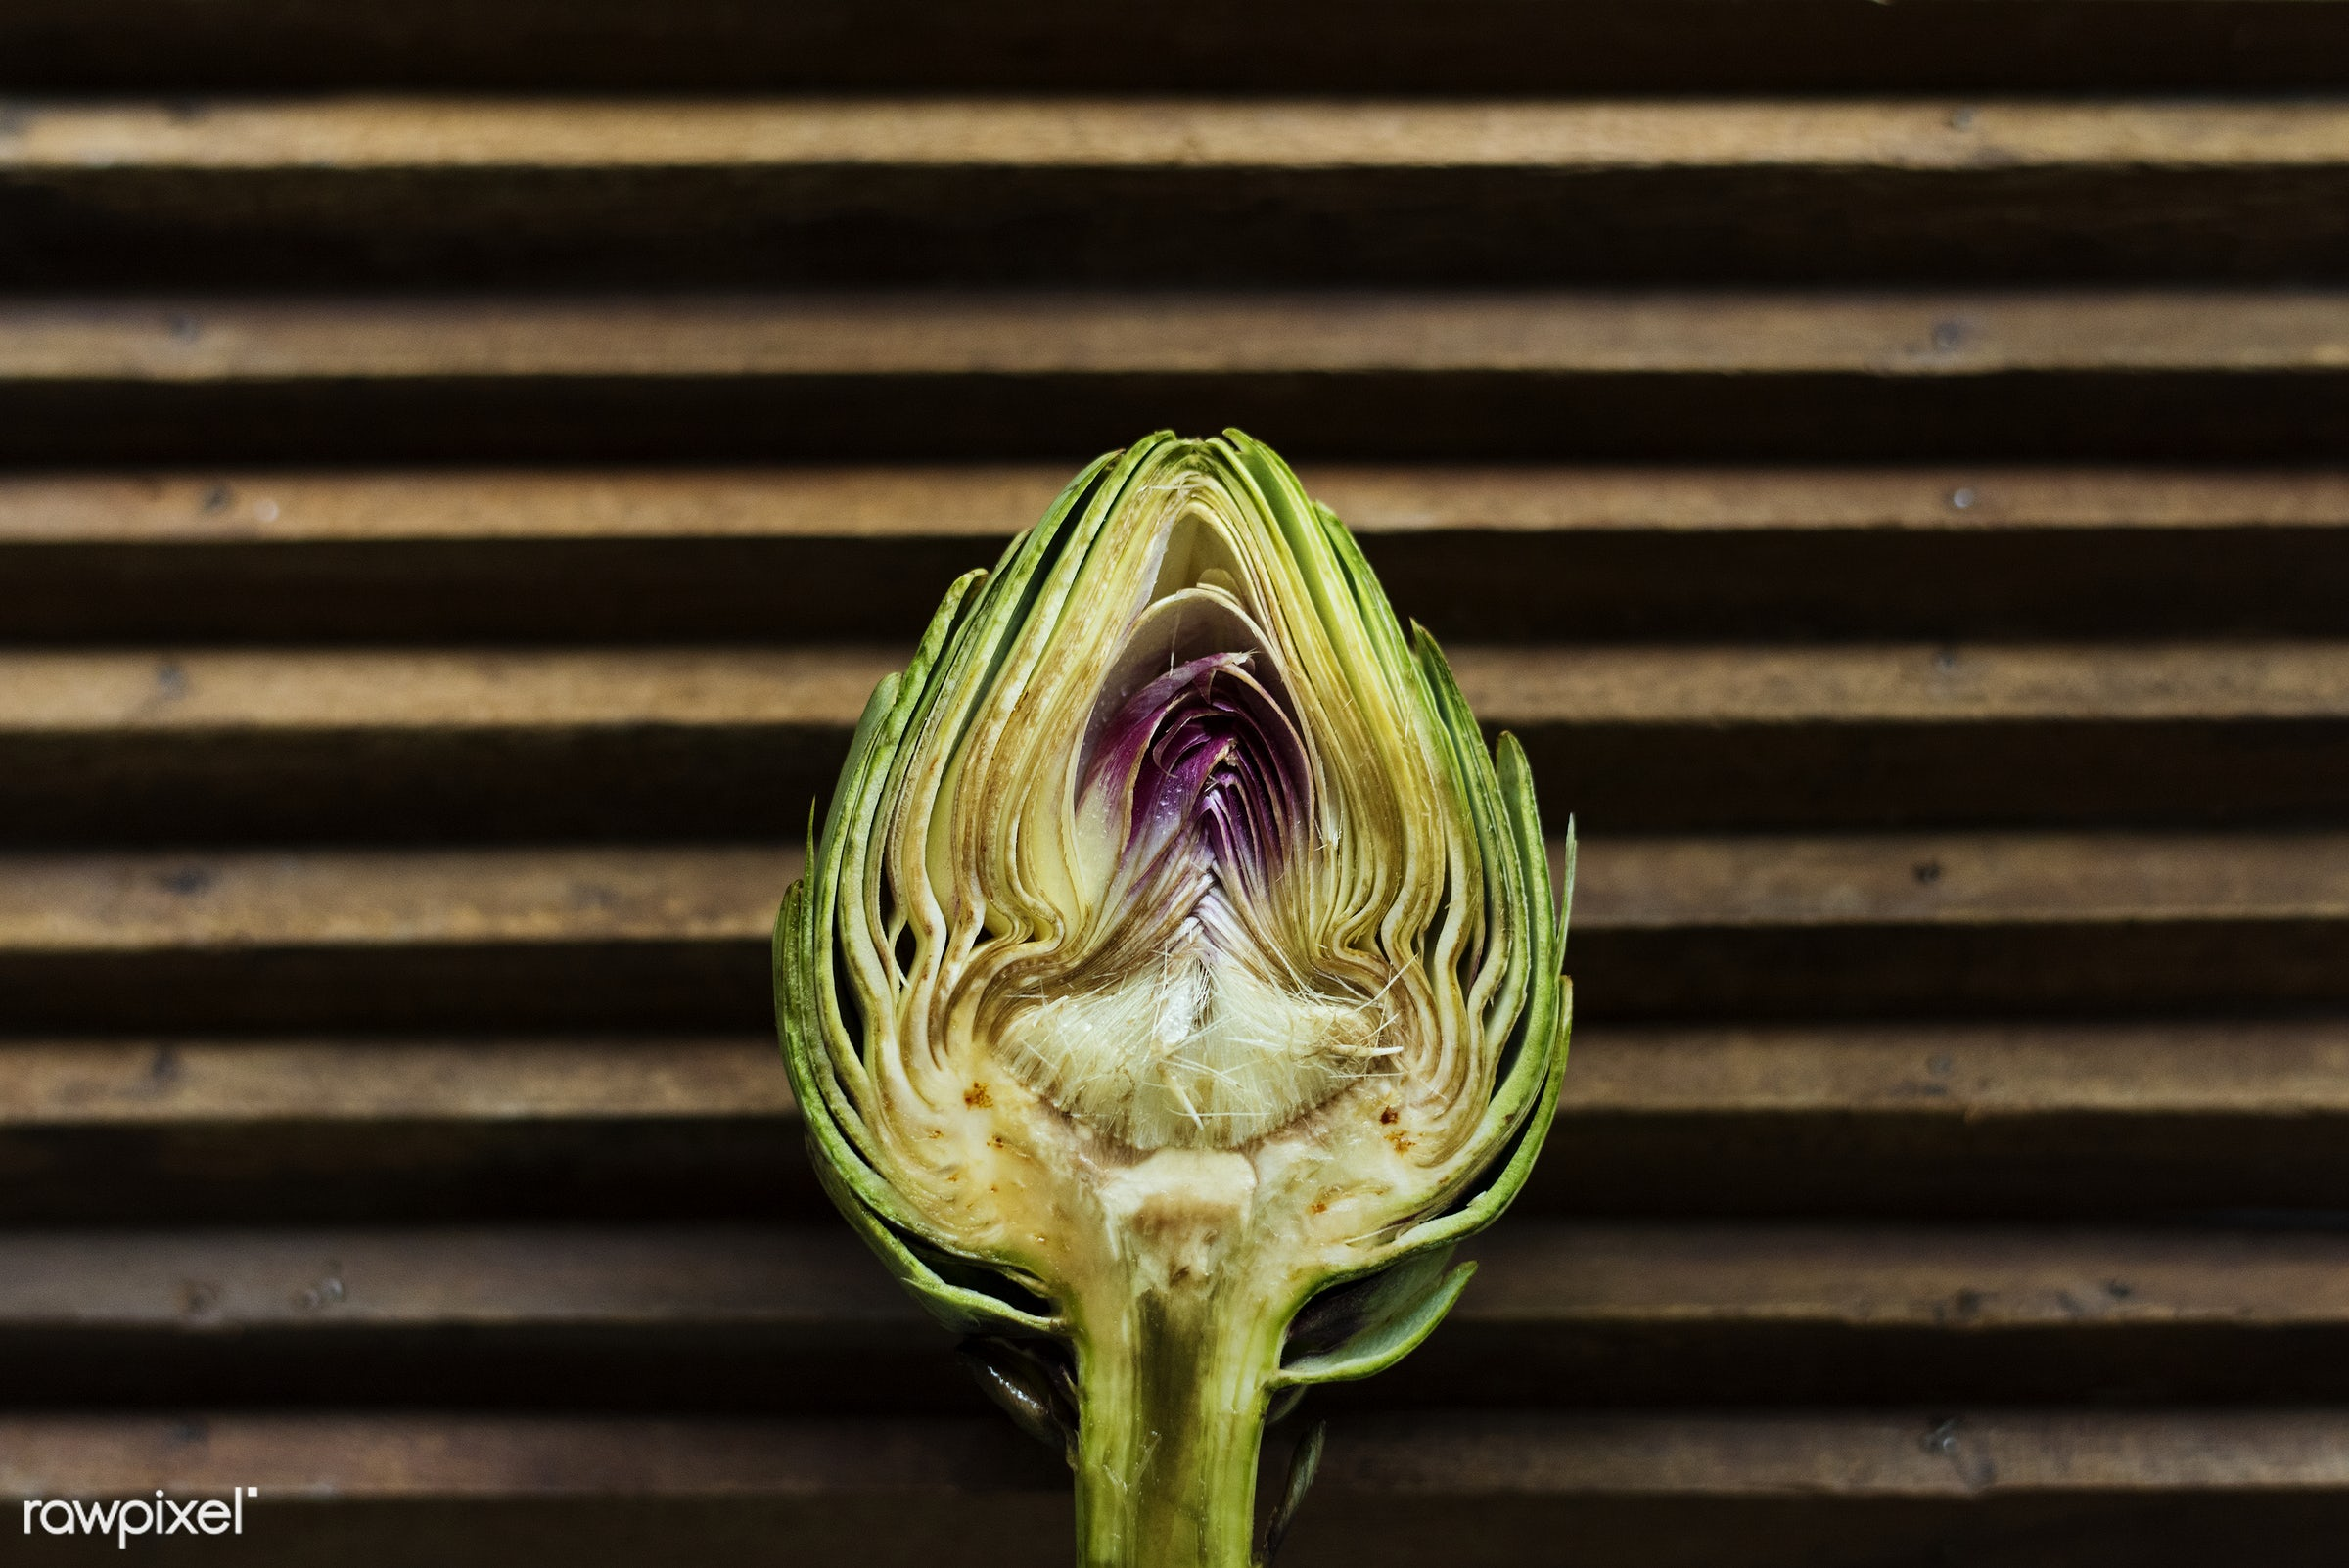 superfood, nobody, green, half, real, organic, artichoke, nature, fresh, cut, bud, vegetable, closeup, healthcare